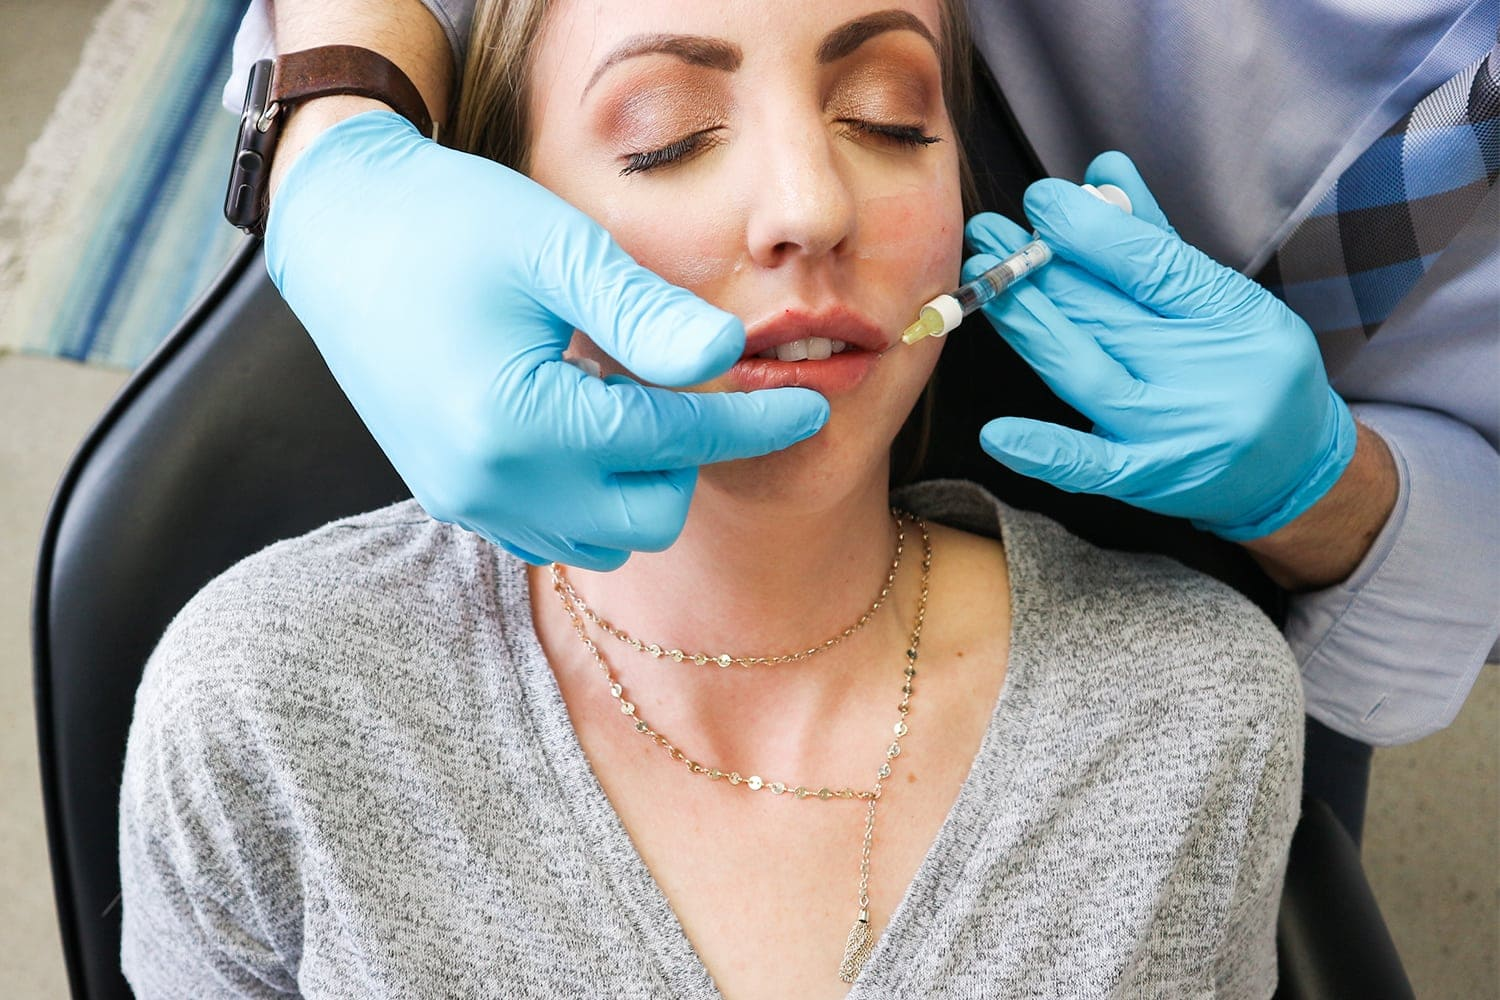 Popular Houston beauty blogger Meg O. on the Go shares her experiences with botox and fillers, along with frequently asked questions